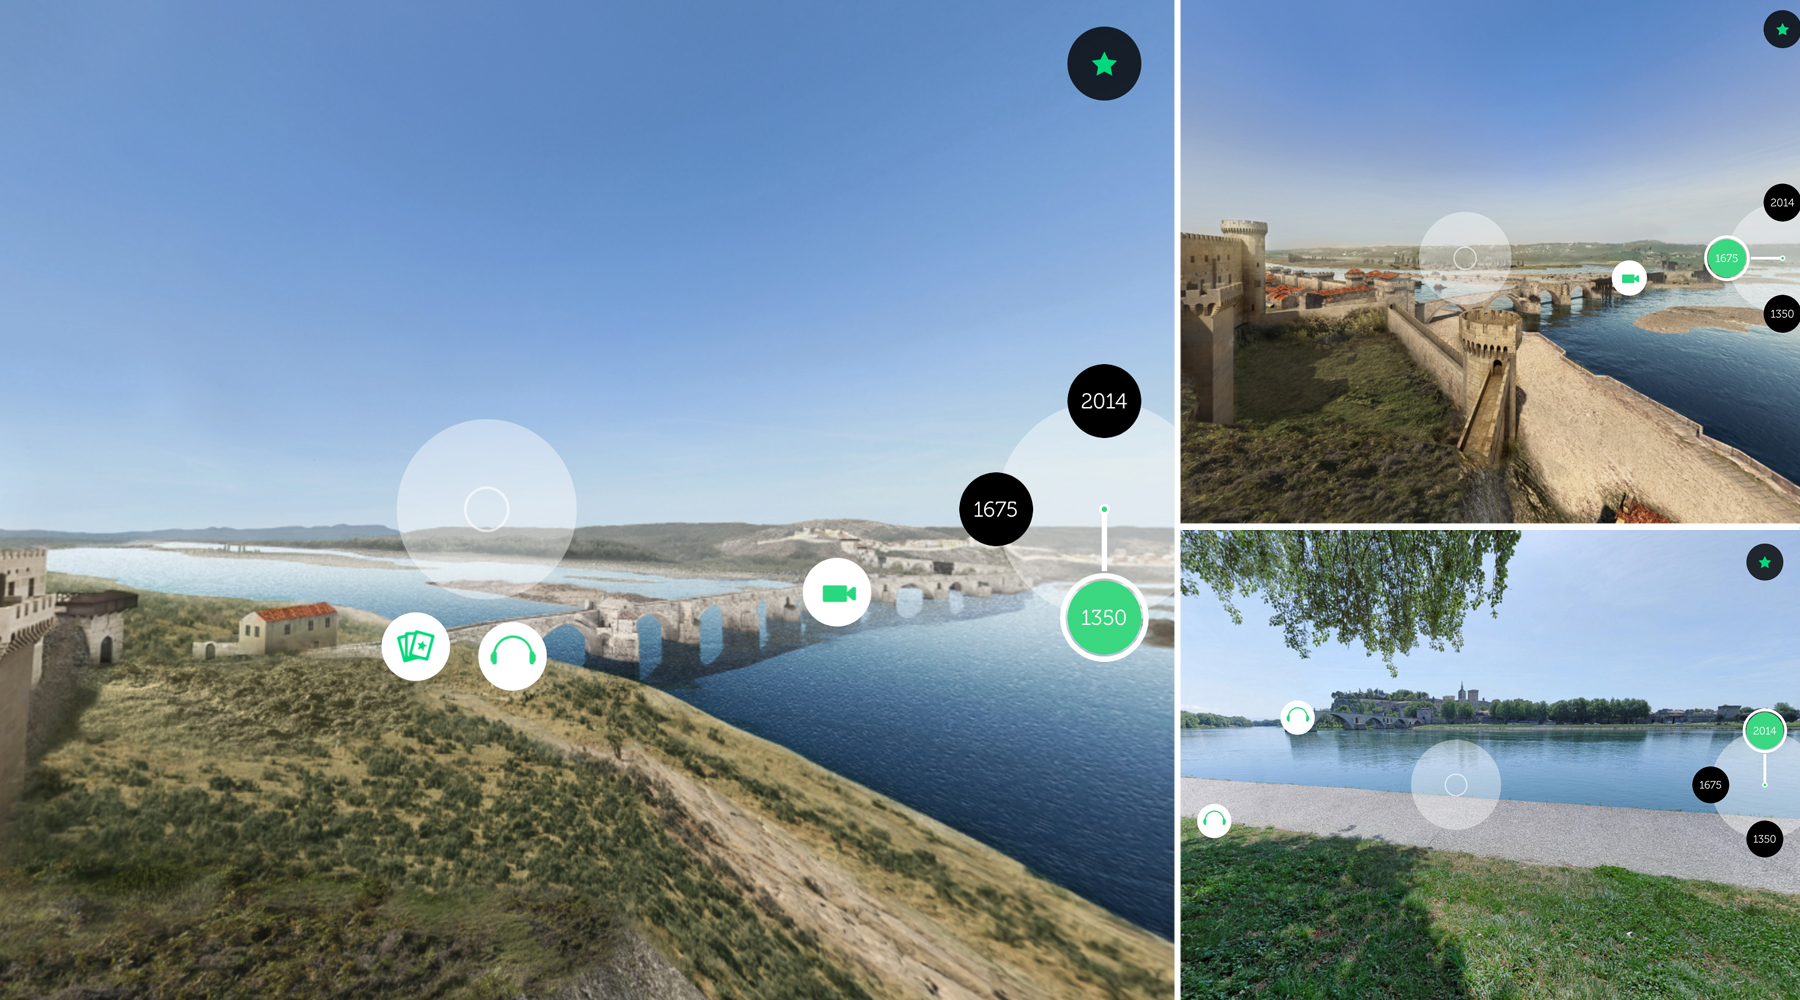 L'interface de l'application Avignon 3D : le pont en 1350, 1675 et (...)